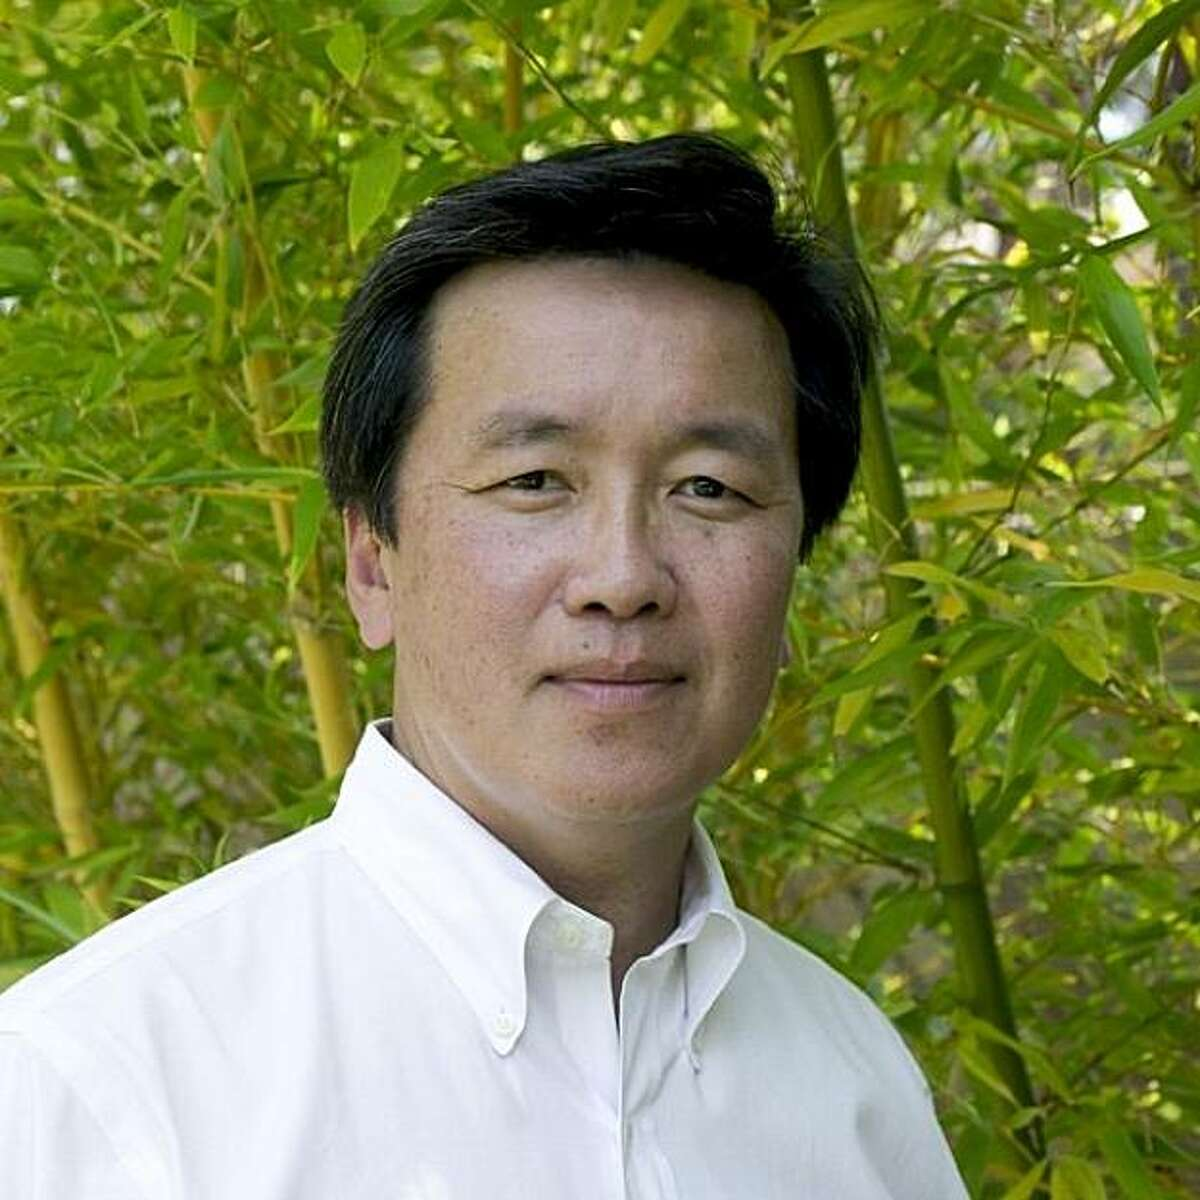 John Wong is a managing principal of SWA Group, a leading landscape architecture firm with offices in San Francisco and Sausalito